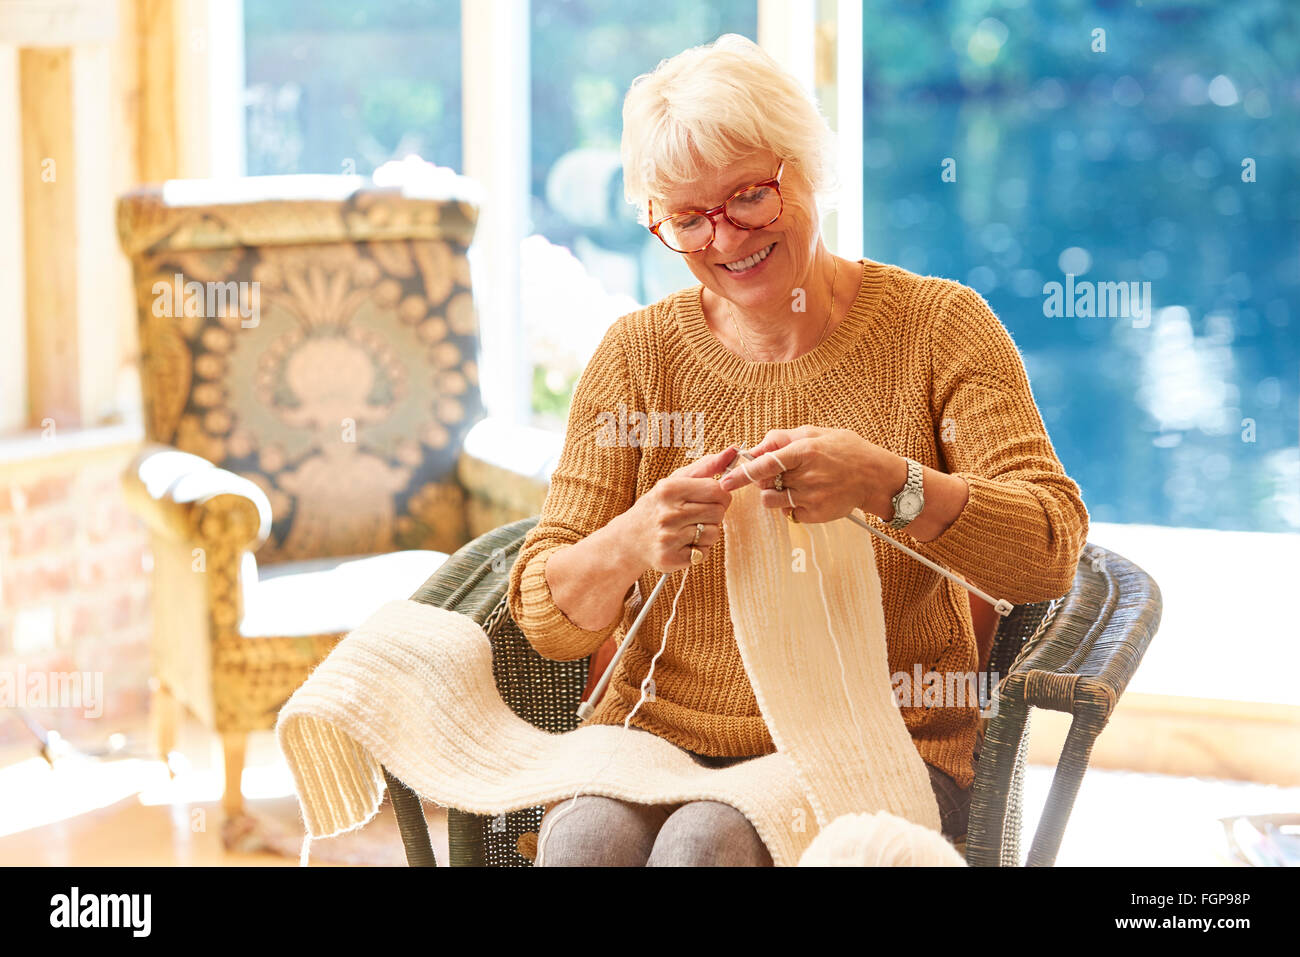 Senior woman knitting in living room - Stock Image